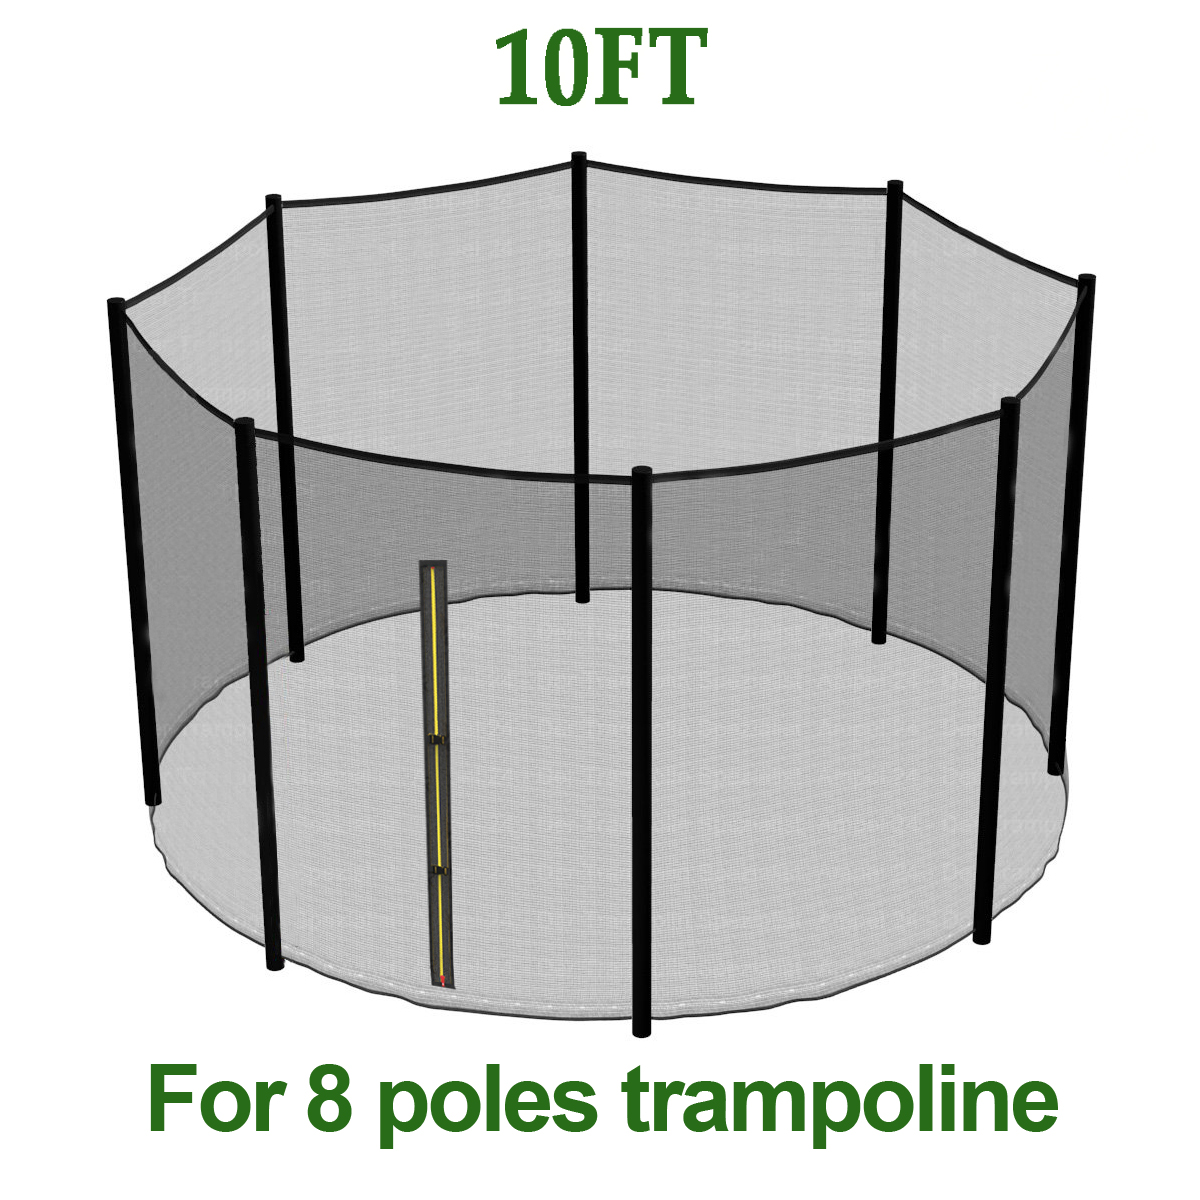 10FT Trampoline Replacement Safety Net Enclosure Sport